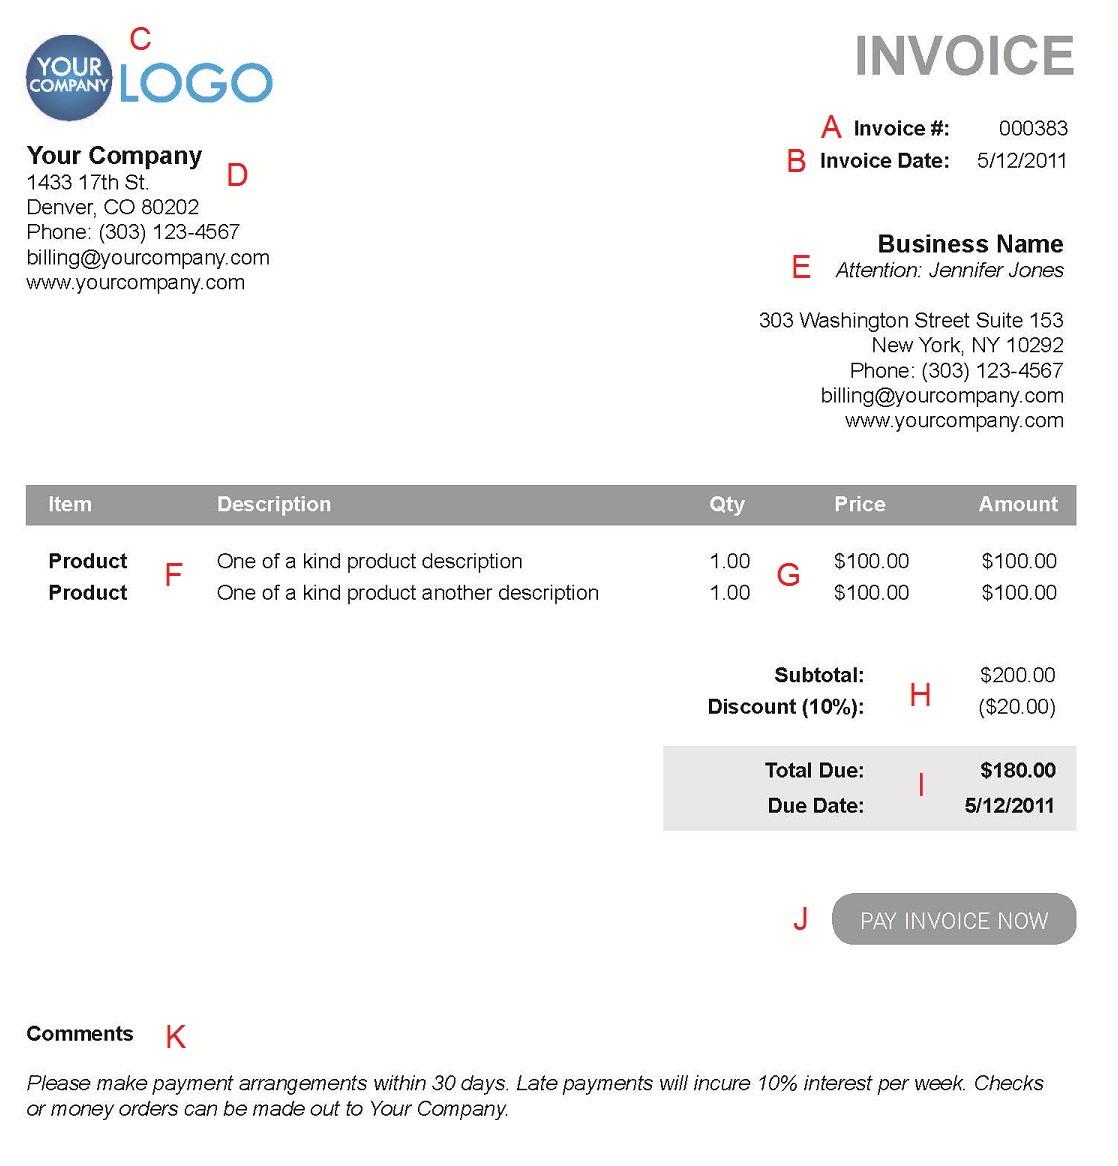 Coolmathgamesus  Ravishing The  Different Sections Of An Electronic Payment Invoice With Exciting A  With Cute Neat Receipts Tutorial Also Receipt Register In Addition Pos Receipt Paper And Usps Certified Mail Return Receipt Rates As Well As Handyman Receipt Template Additionally Grocery Store Receipts From Paysimplecom With Coolmathgamesus  Exciting The  Different Sections Of An Electronic Payment Invoice With Cute A  And Ravishing Neat Receipts Tutorial Also Receipt Register In Addition Pos Receipt Paper From Paysimplecom